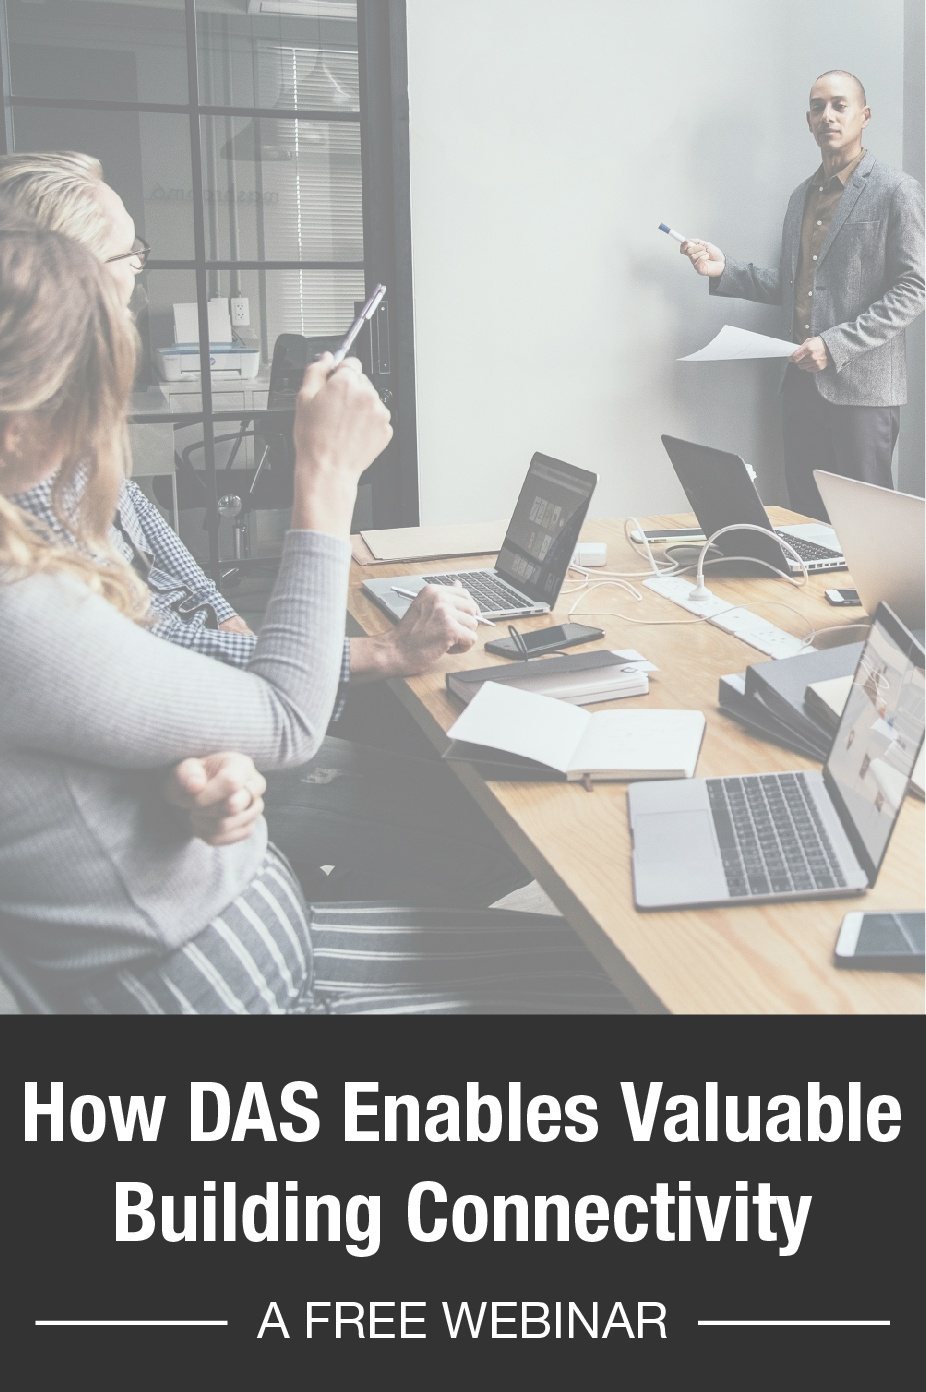 How DAS Enables Valuable Building Connectivity_Sidebar Vert 222x334